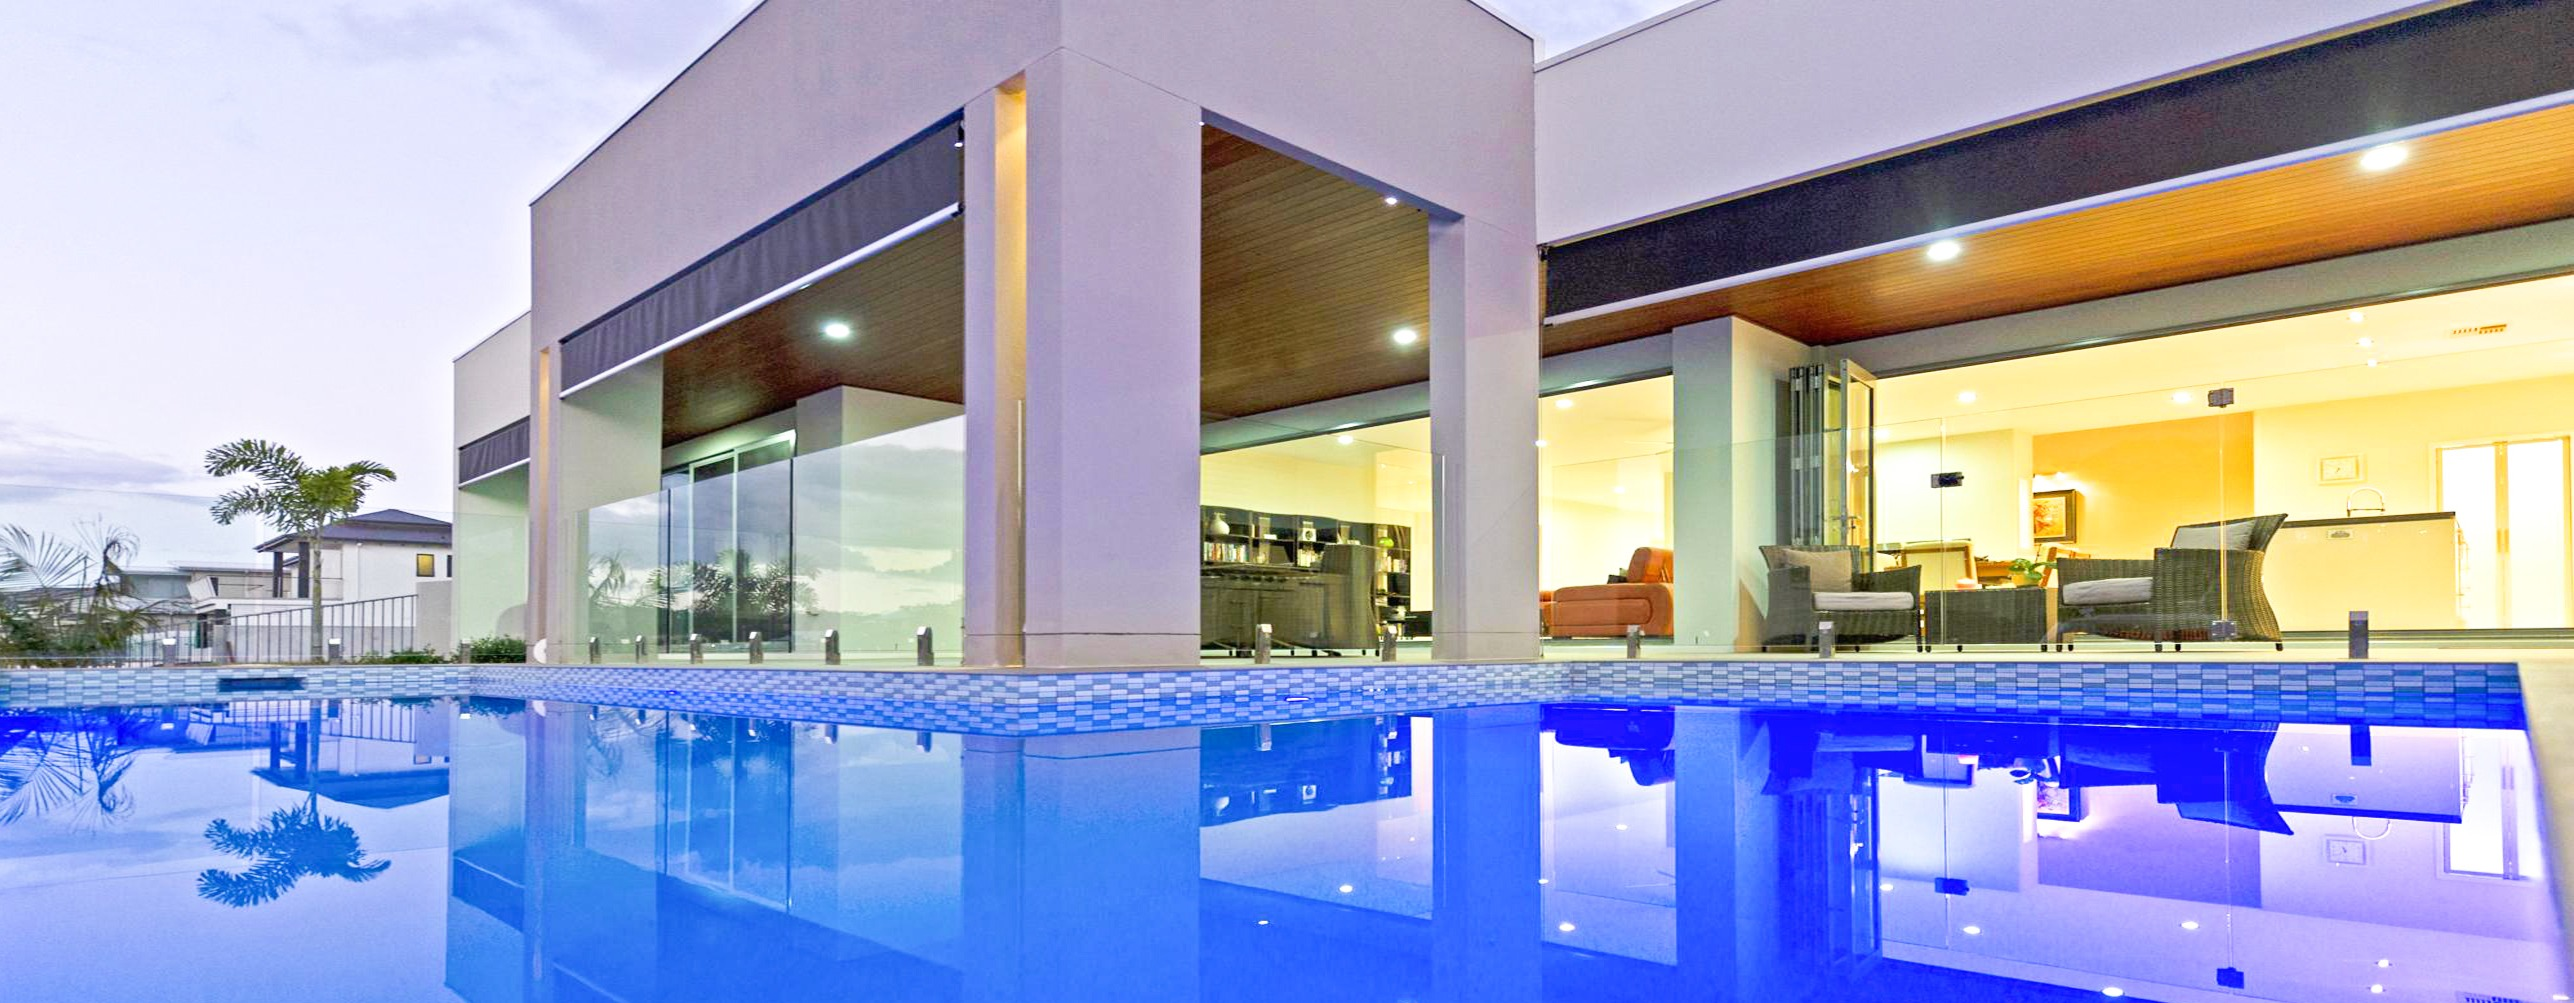 house%20designs%20with%20pool%2016_edite